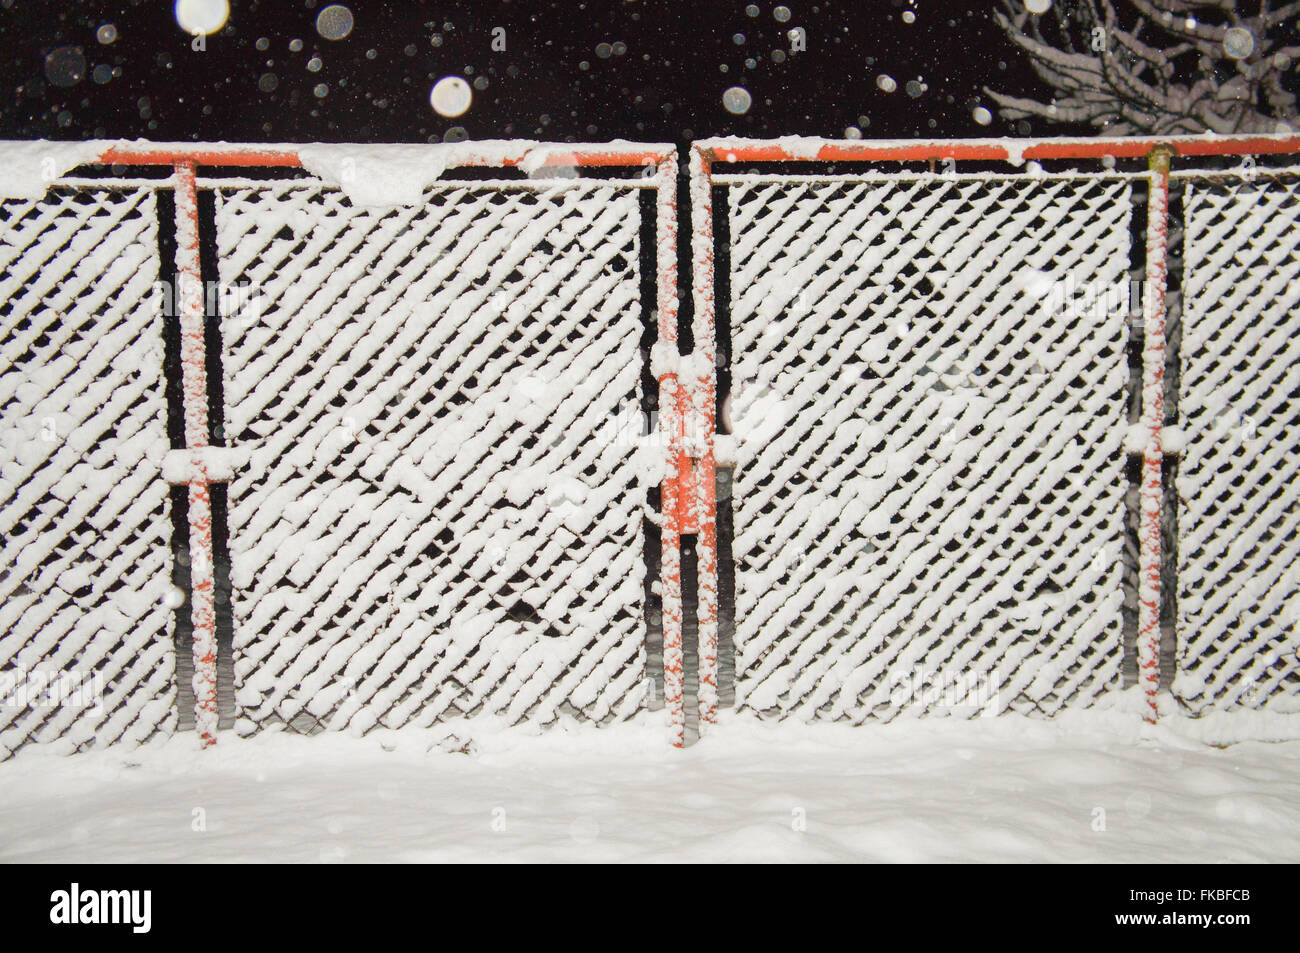 wire fence gate. Wire Fence Gate, Winter, Snow, Snowfall, Night Photo - Stock Image Gate E